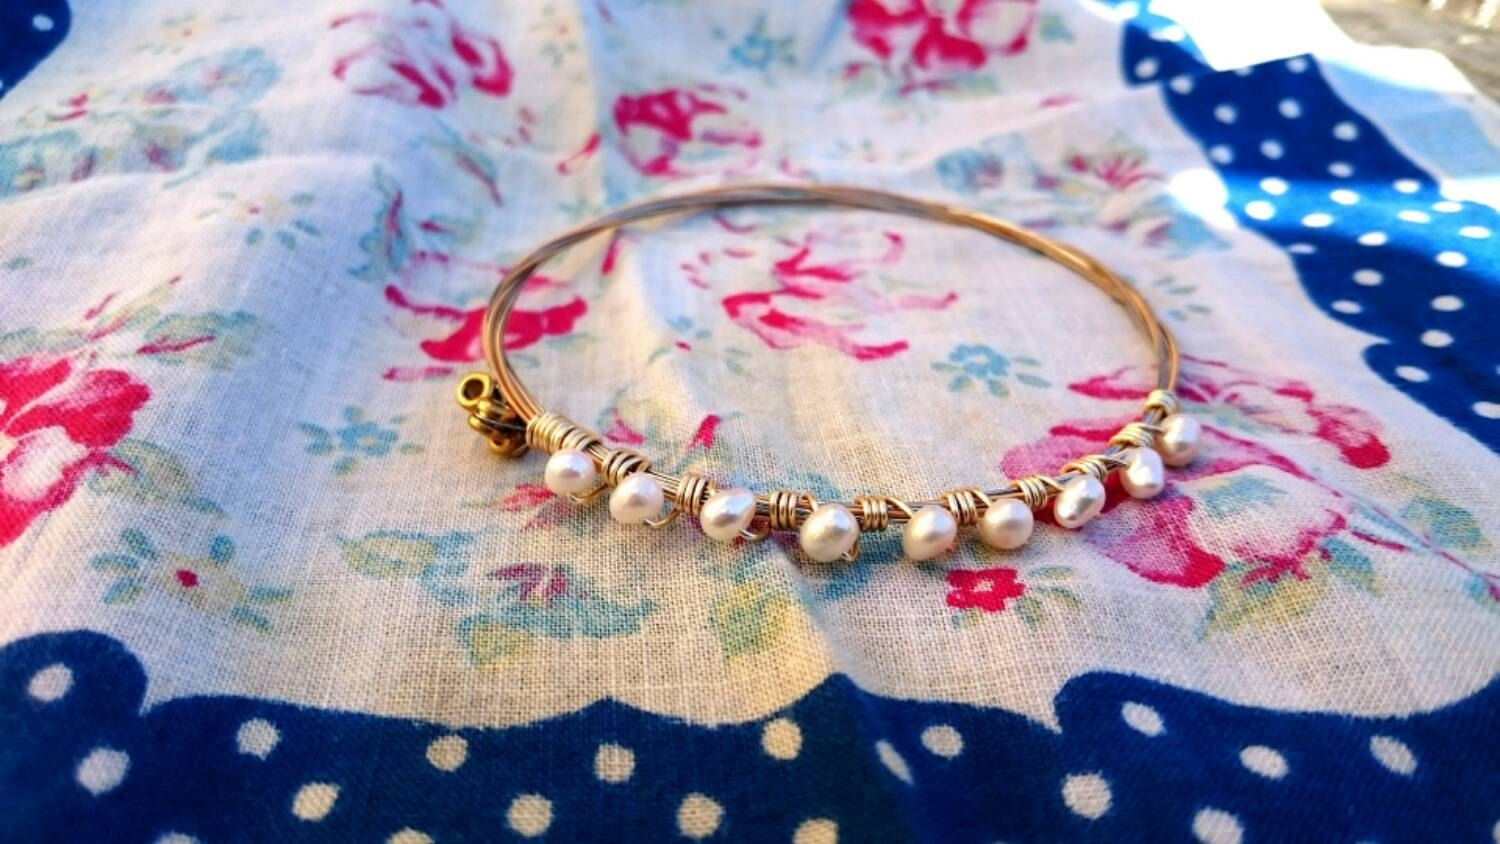 guitar string bangle, gold bangle, silver bangle, bronze bangle, pearl bangle, music gift, sentimental gift, repurposed jewelry, wedding by RisingDawnBoutique on Etsy